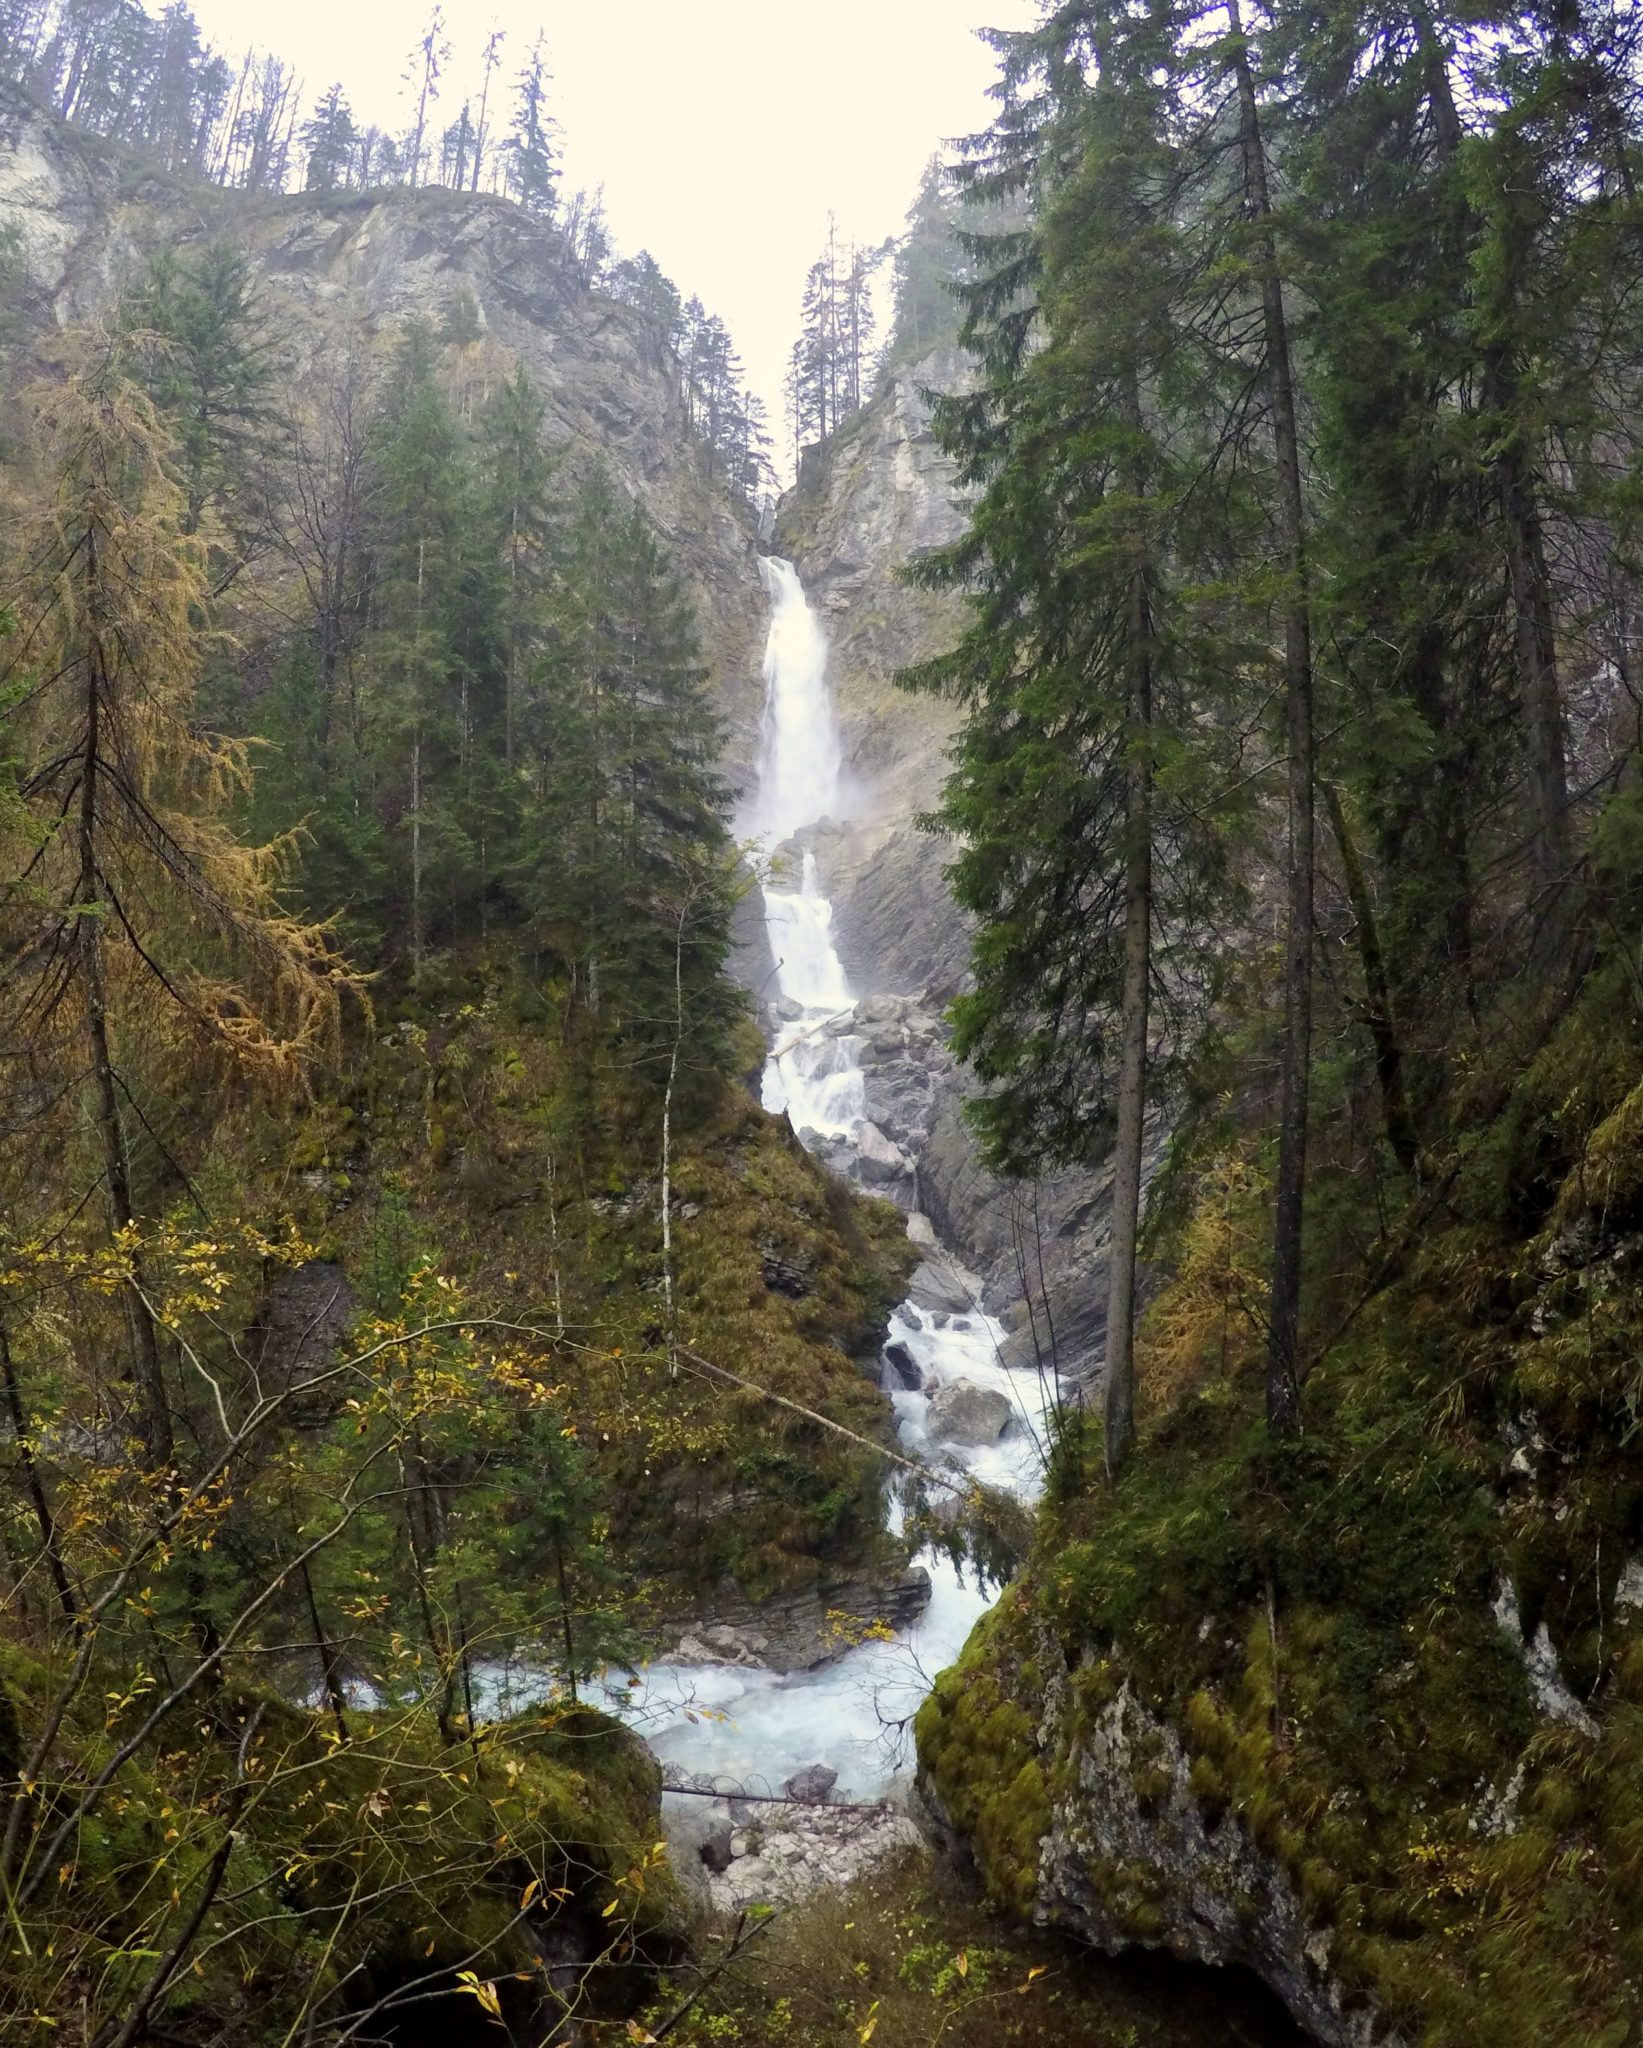 Lower Martuljek Fall, Triglav National Park, Slovenia